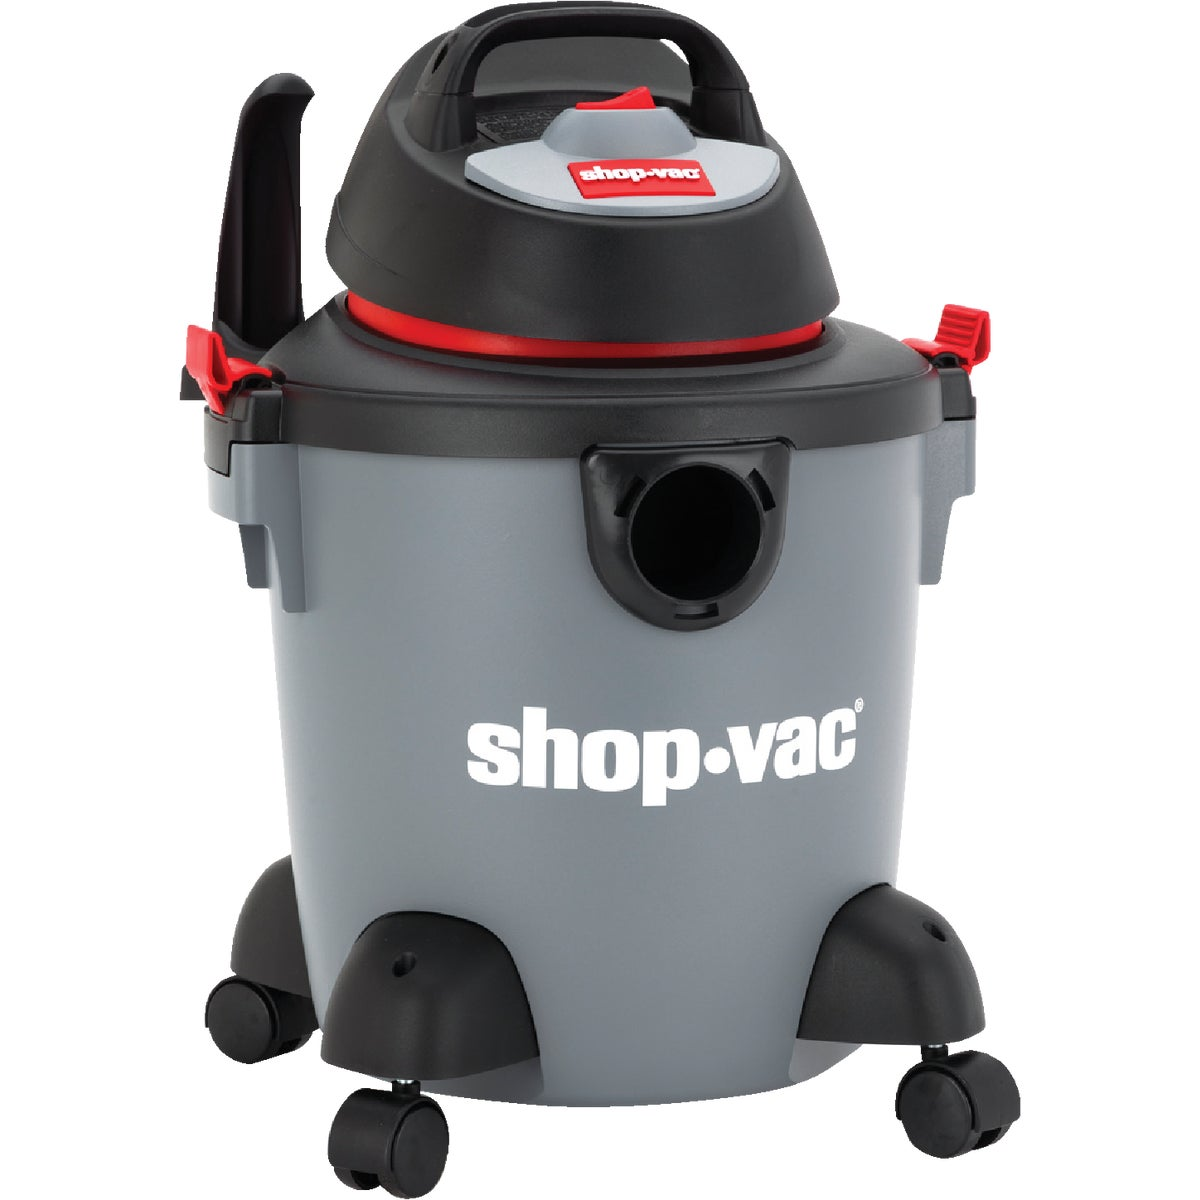 5GAL WET/DRY VAC - 2030400 by Shop Vac Corp